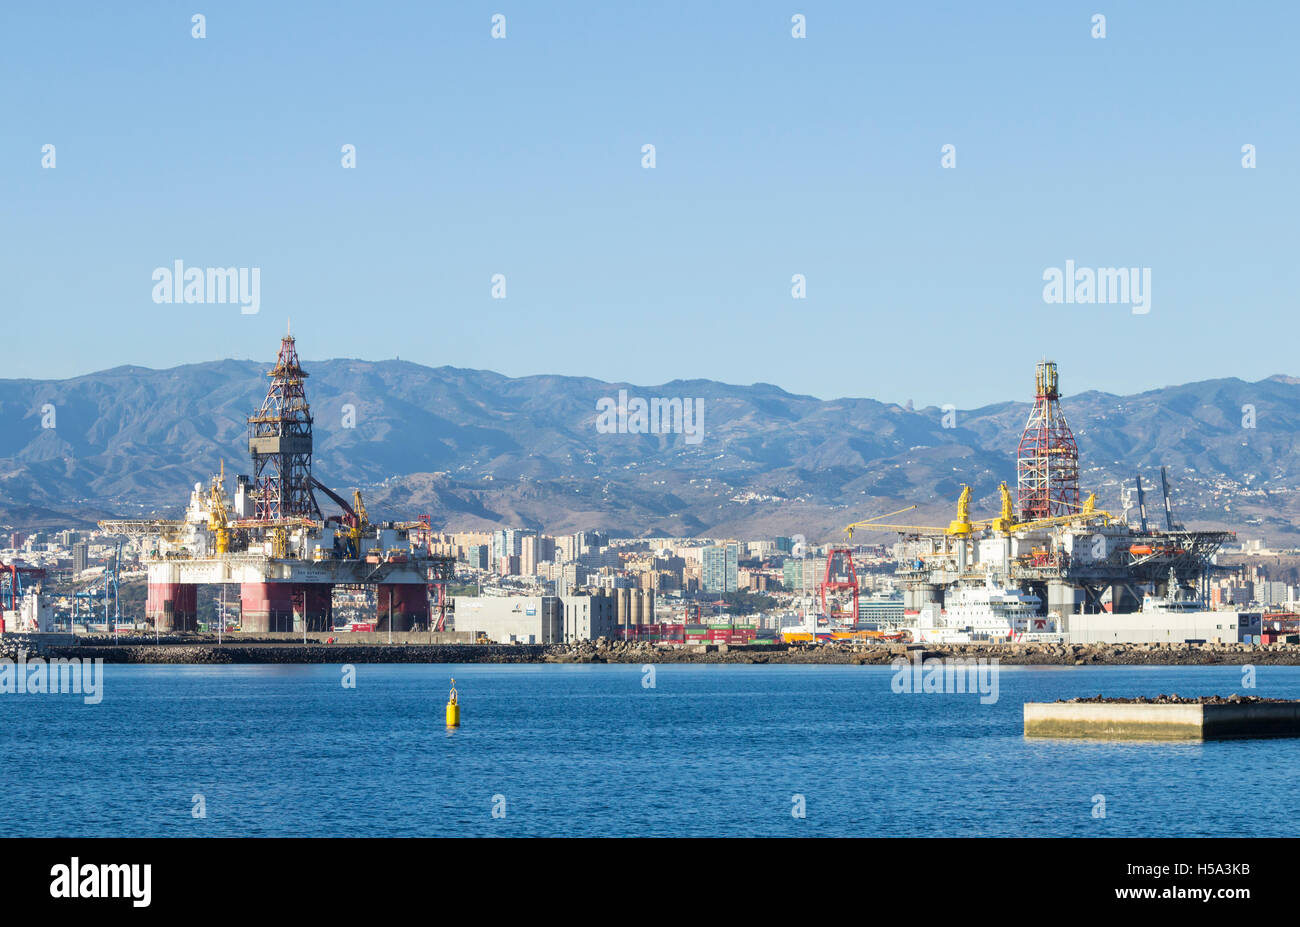 Oil rigs in las palmas port puerto de la luz on gran canaria with stock photo royalty free - Port of las palmas gran canaria ...